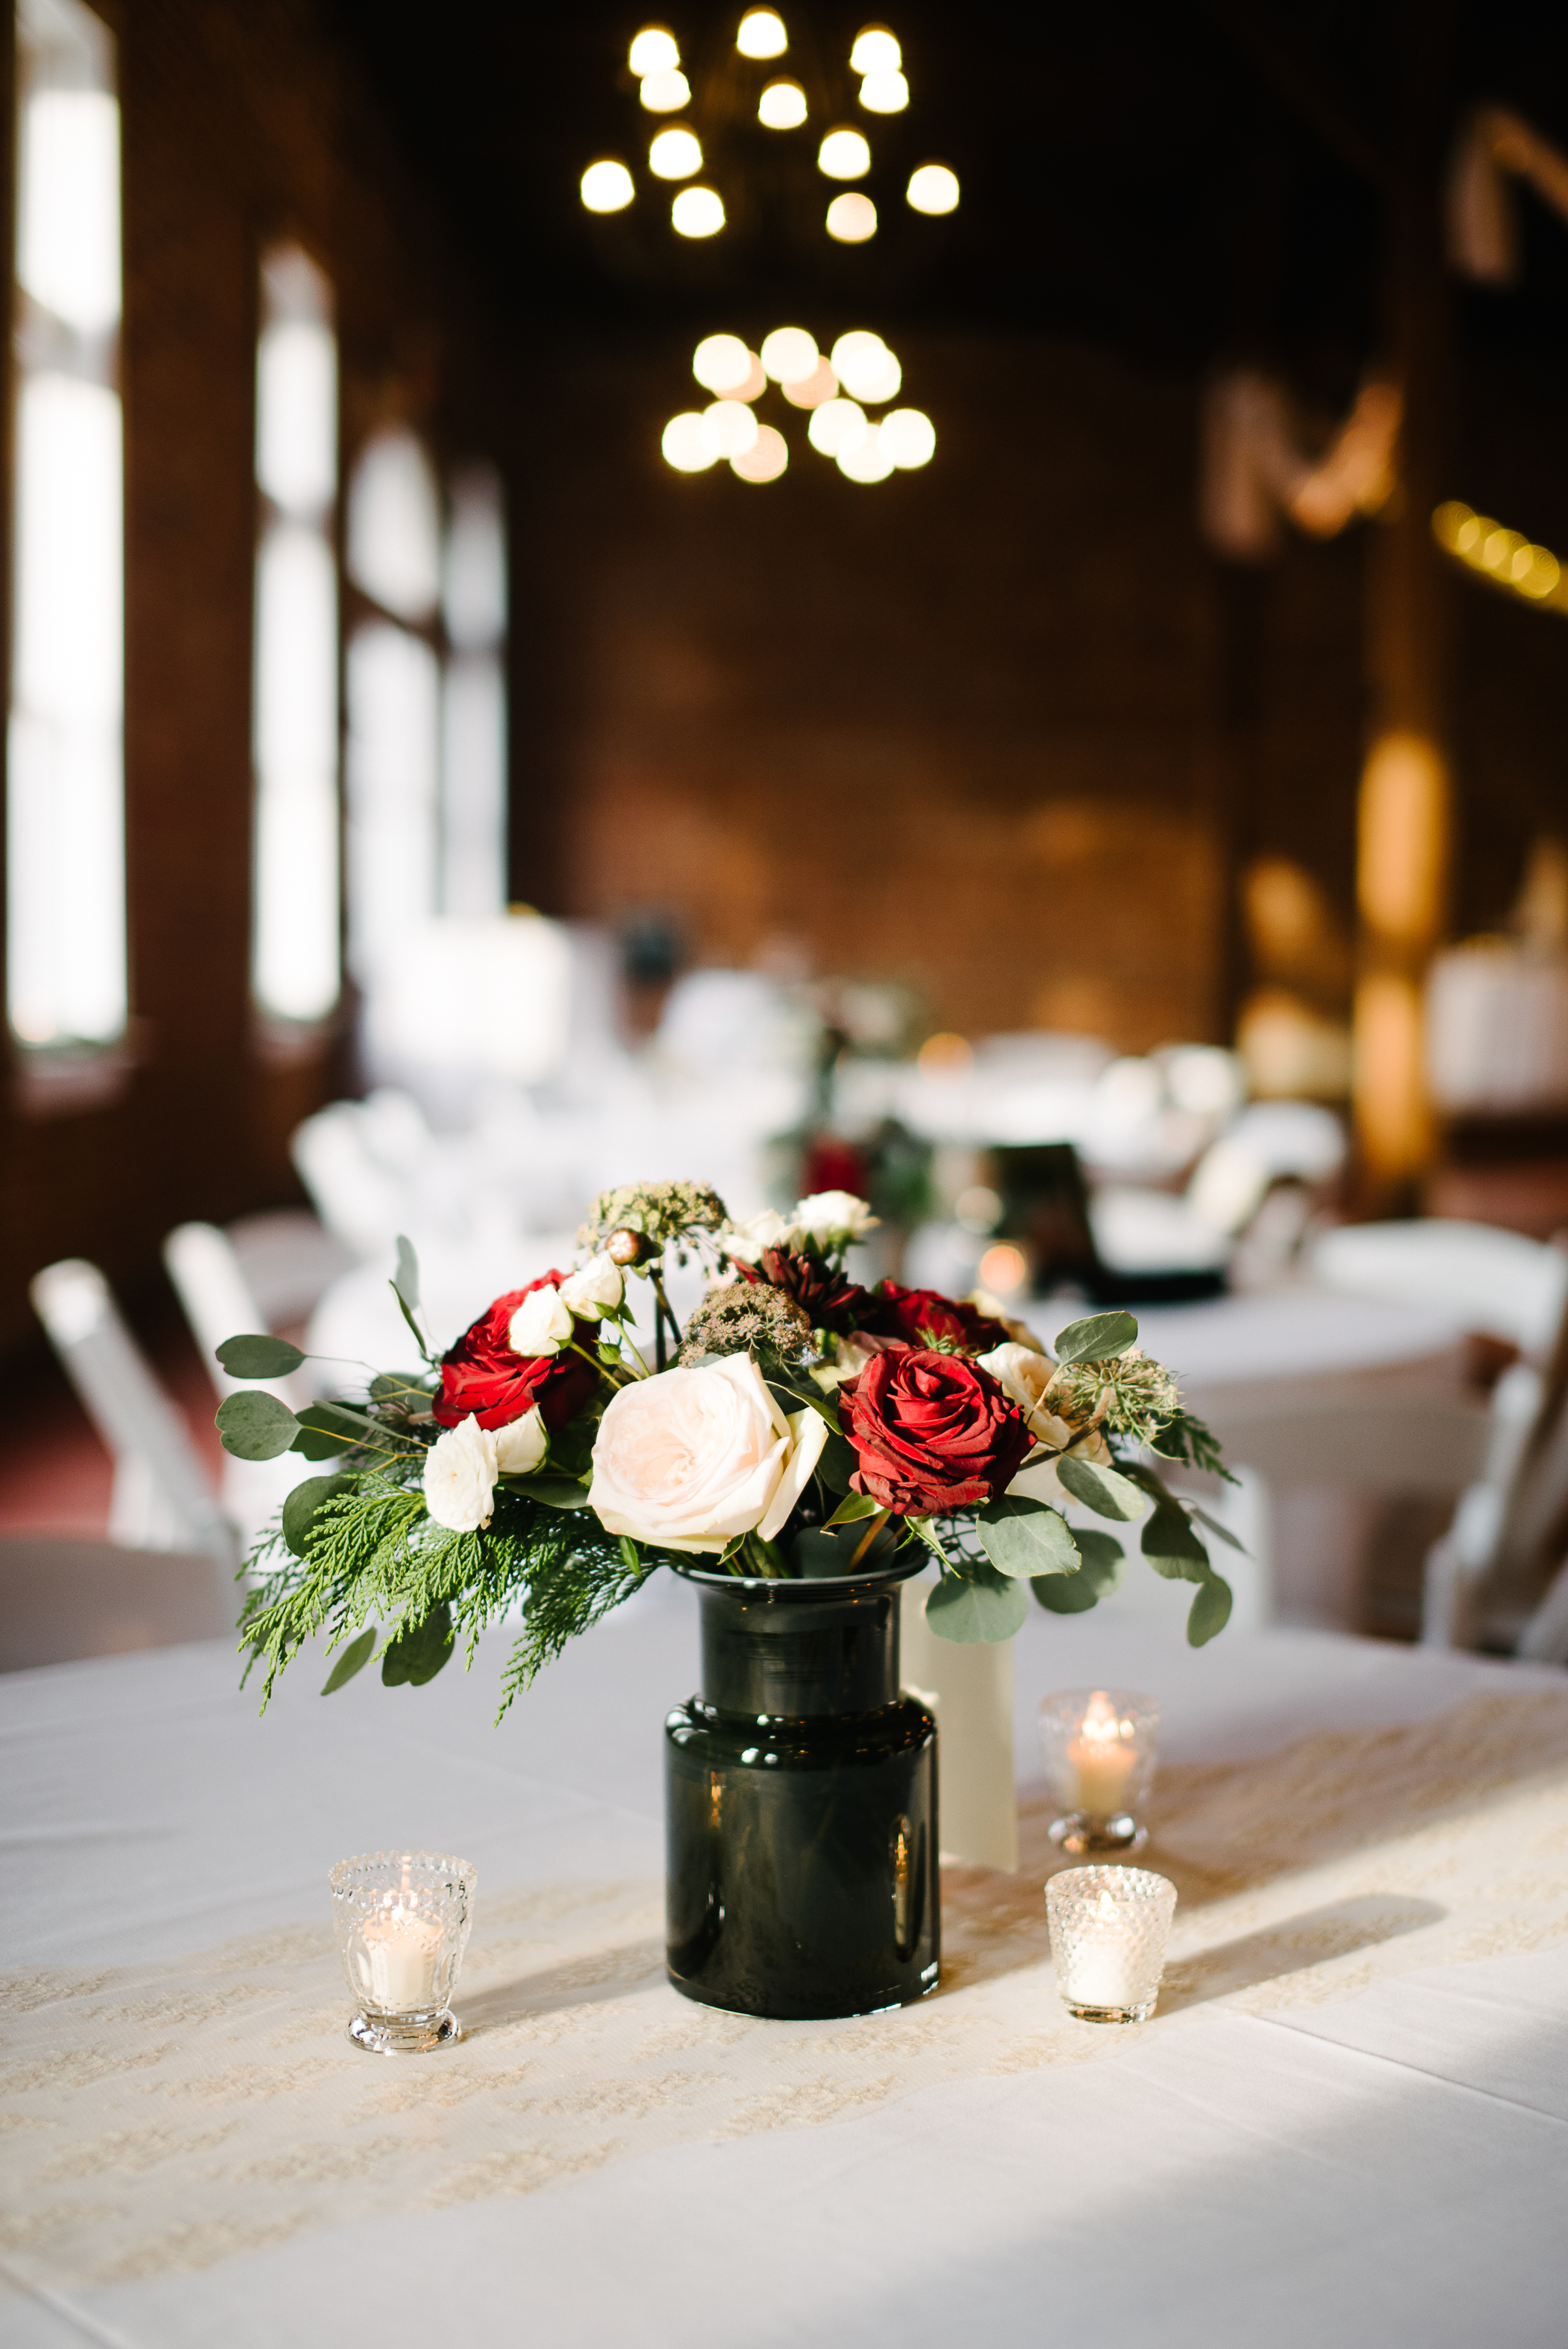 Southern Fete, Southern Wedding, Red and White Rose Center Piece, Root Floral Design